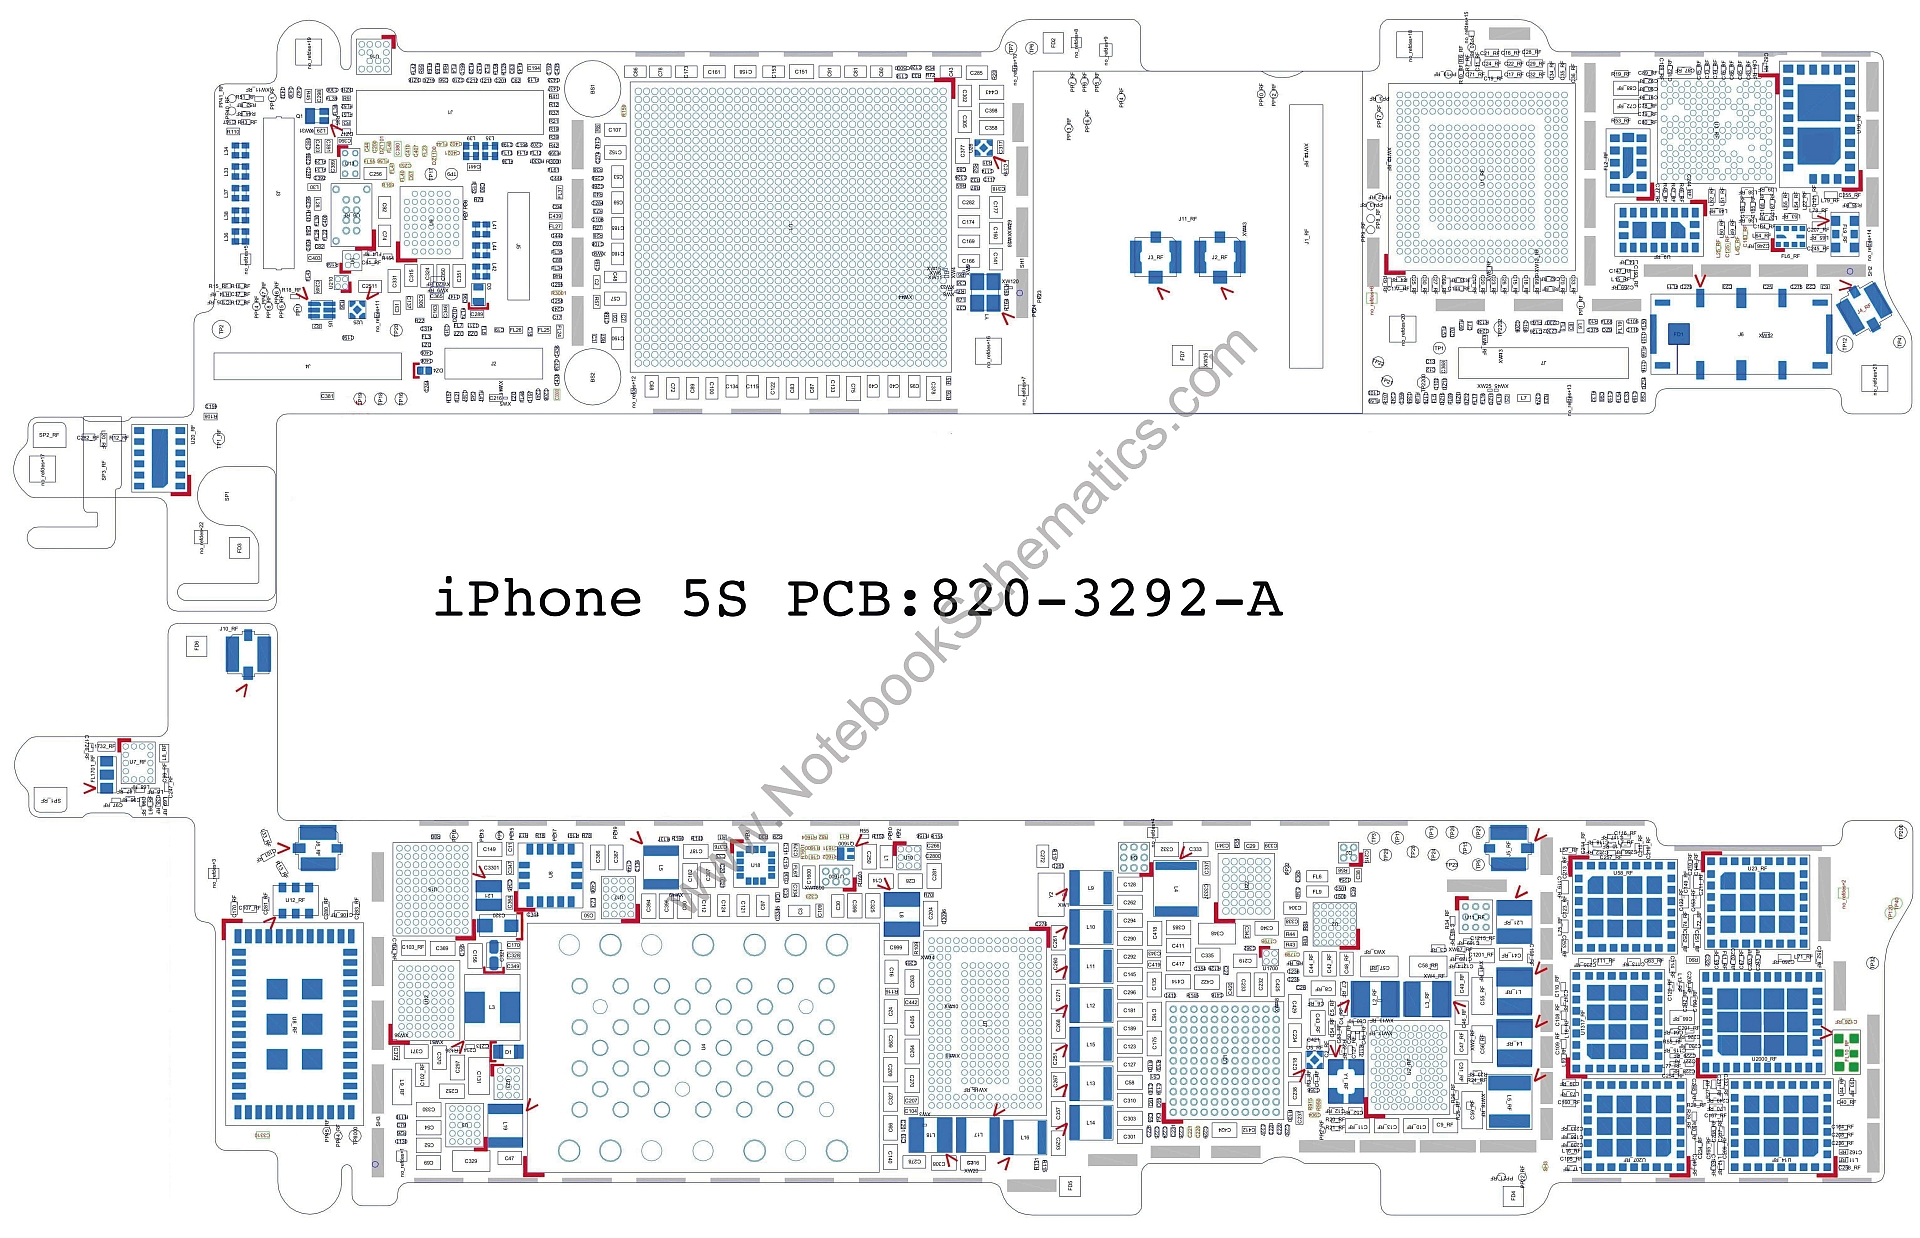 iphone schematic and wiring diagram rat respiratory system 5s 820 3292 a notebookschematics